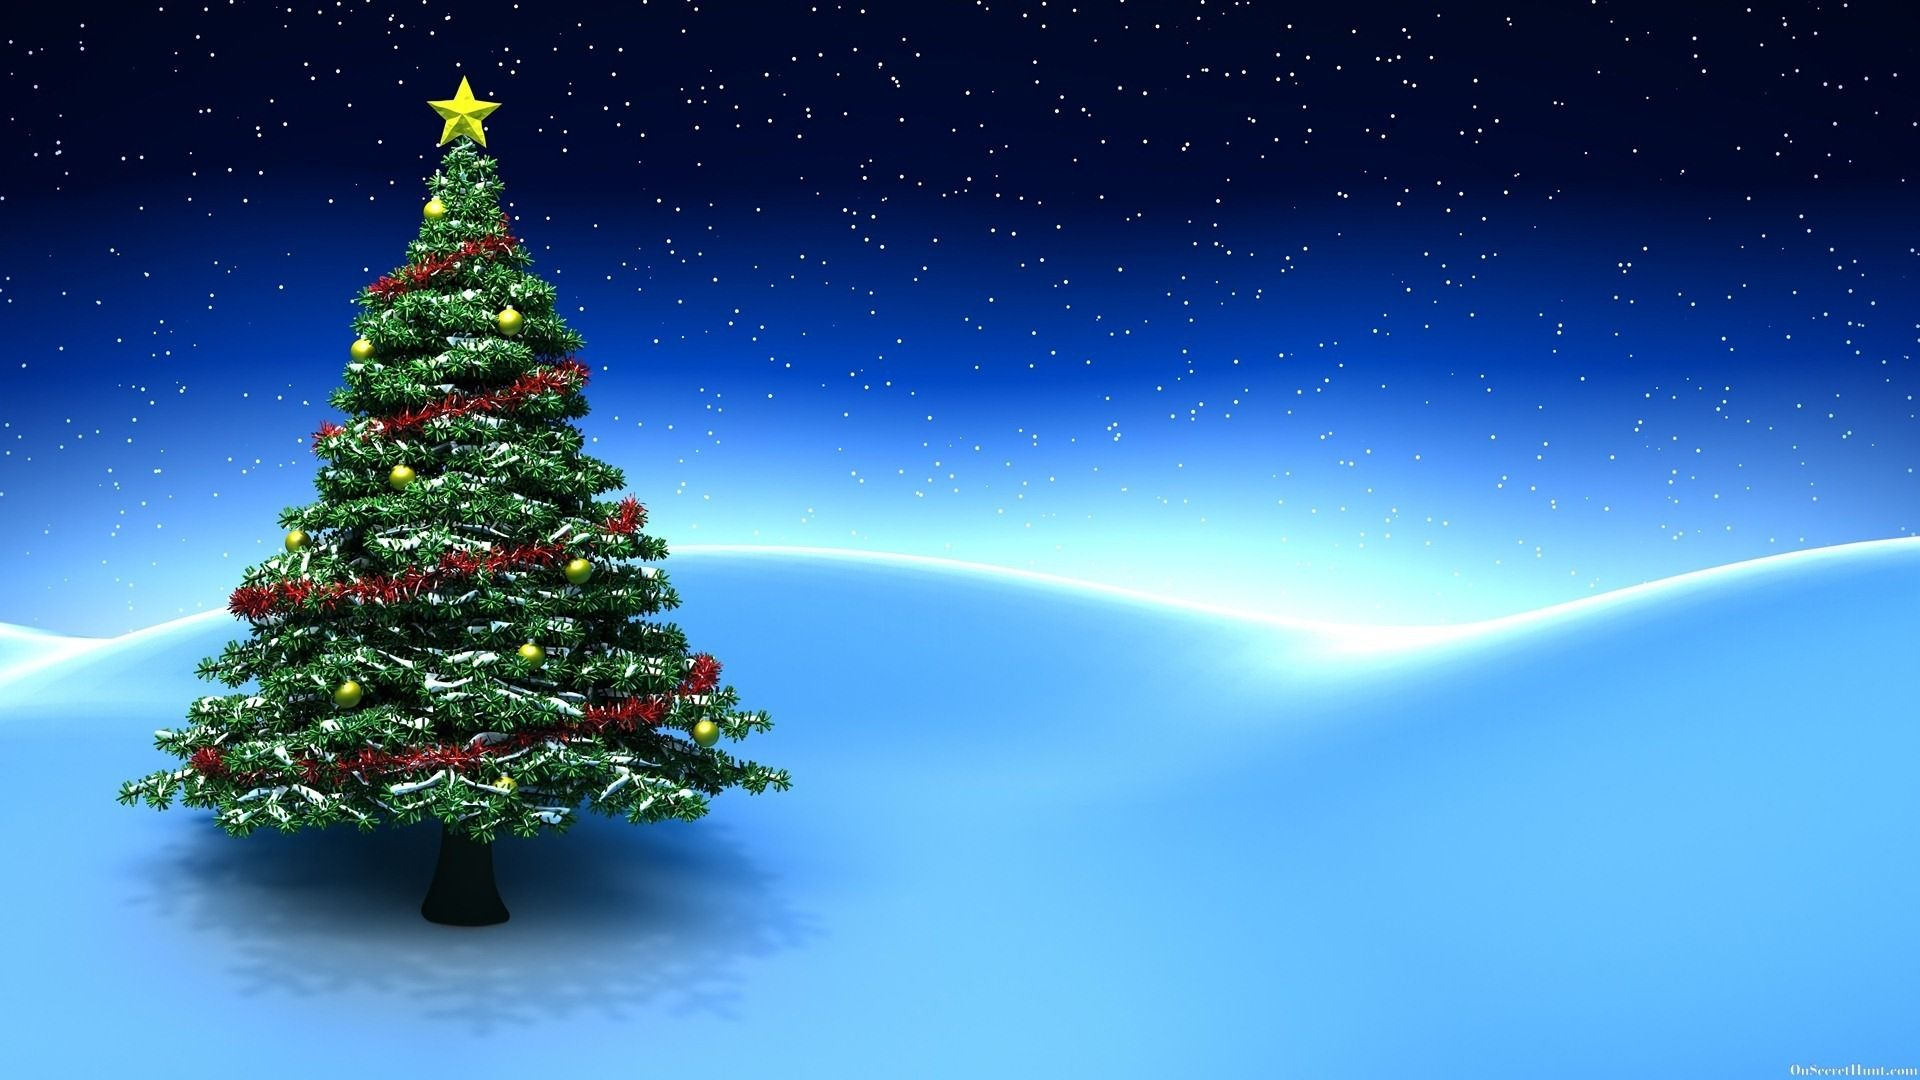 Christmas Eve Wallpapers Beautiful Outdoor Christmas Tree Wallpaper Outdoor Christmas Tree Christmas Tree Wallpaper Christmas Desktop